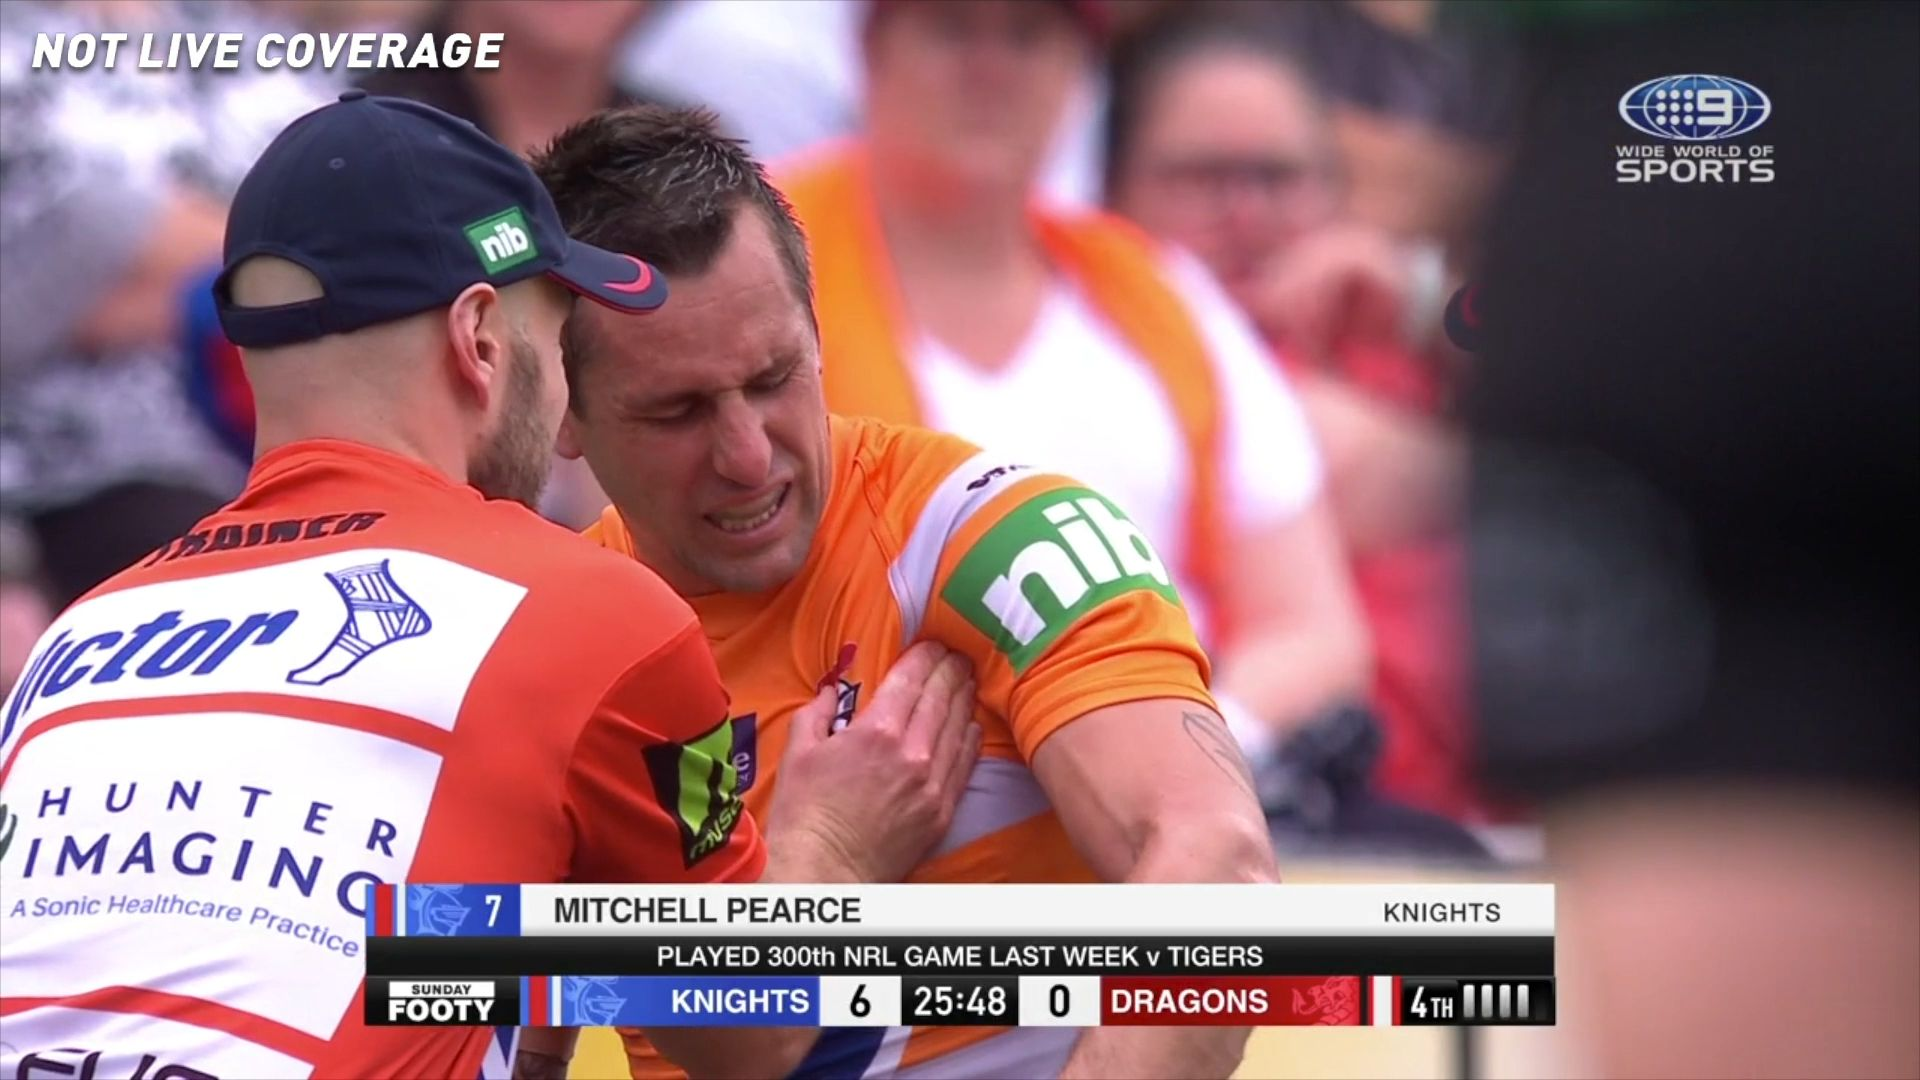 The Mole: Wests Tigers approached about Mitchell Pearce joining next season